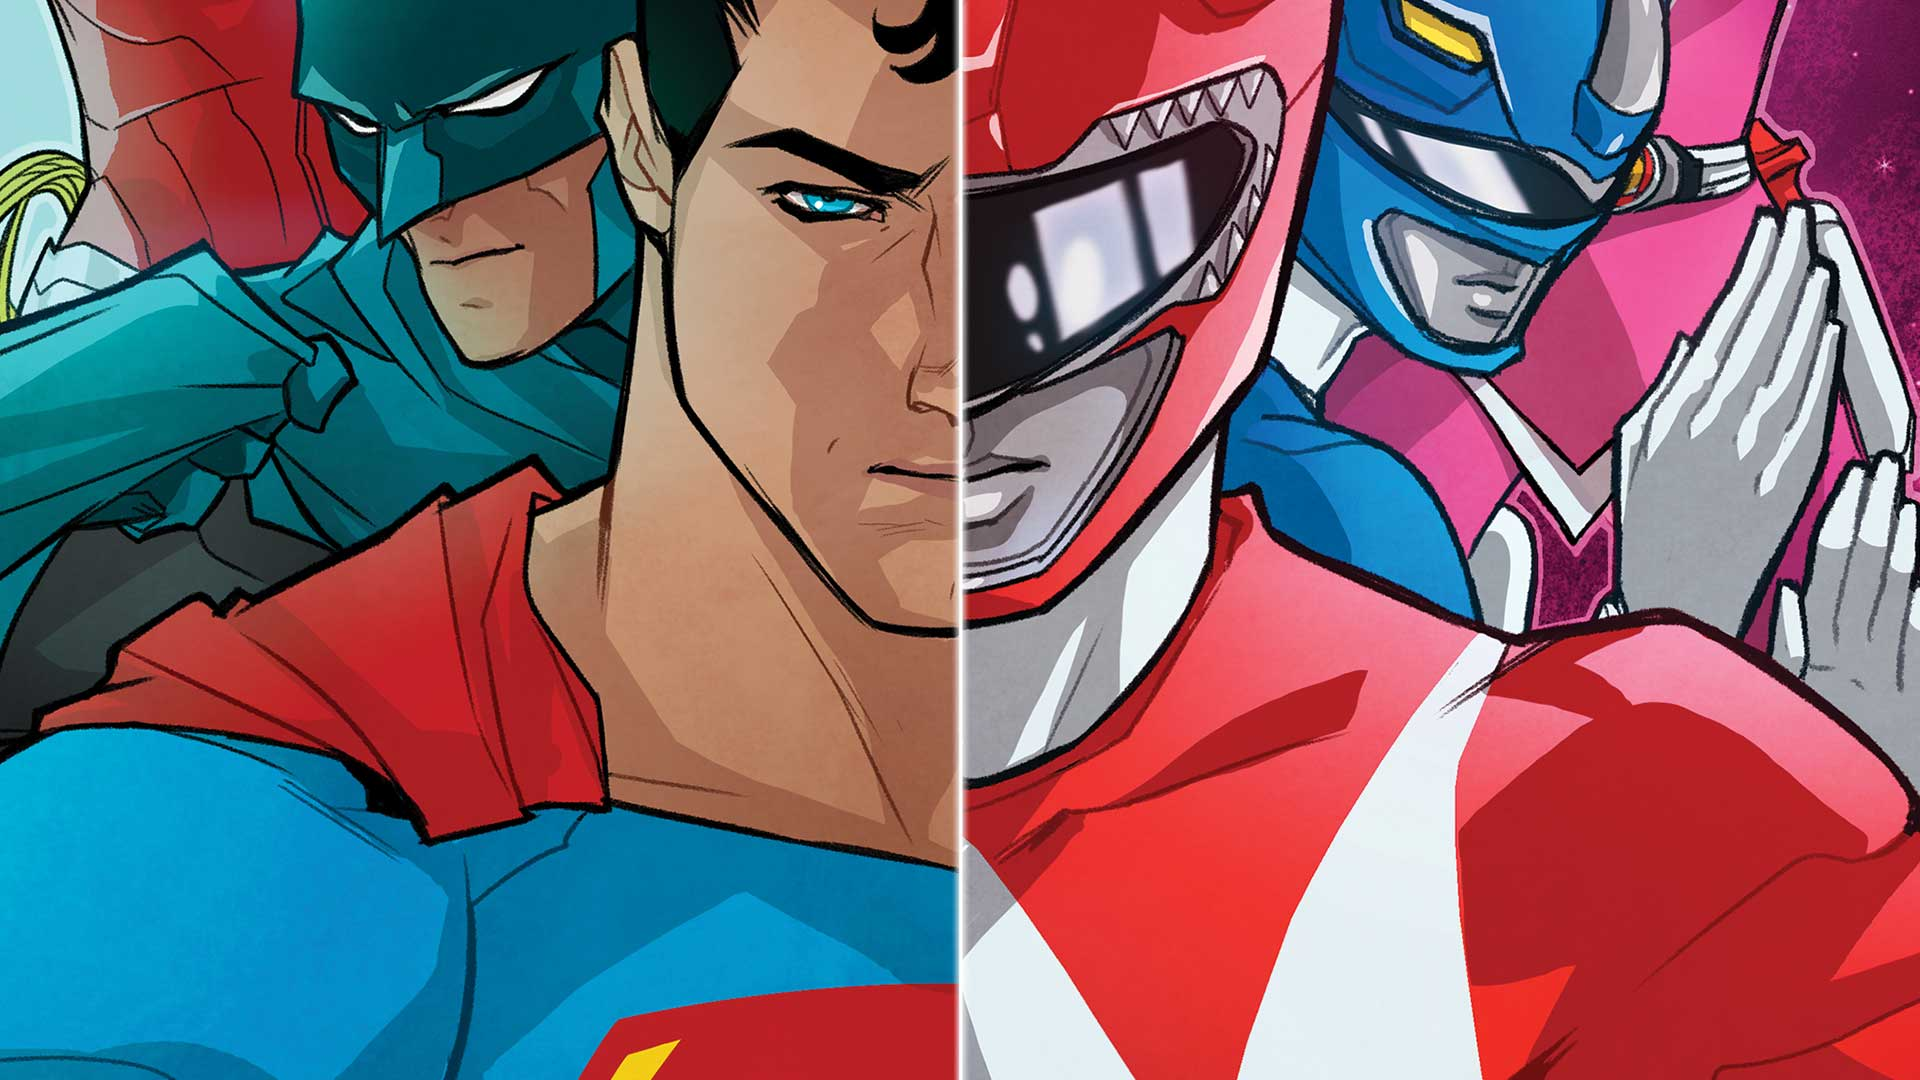 justice league/power rangers #1 | dc